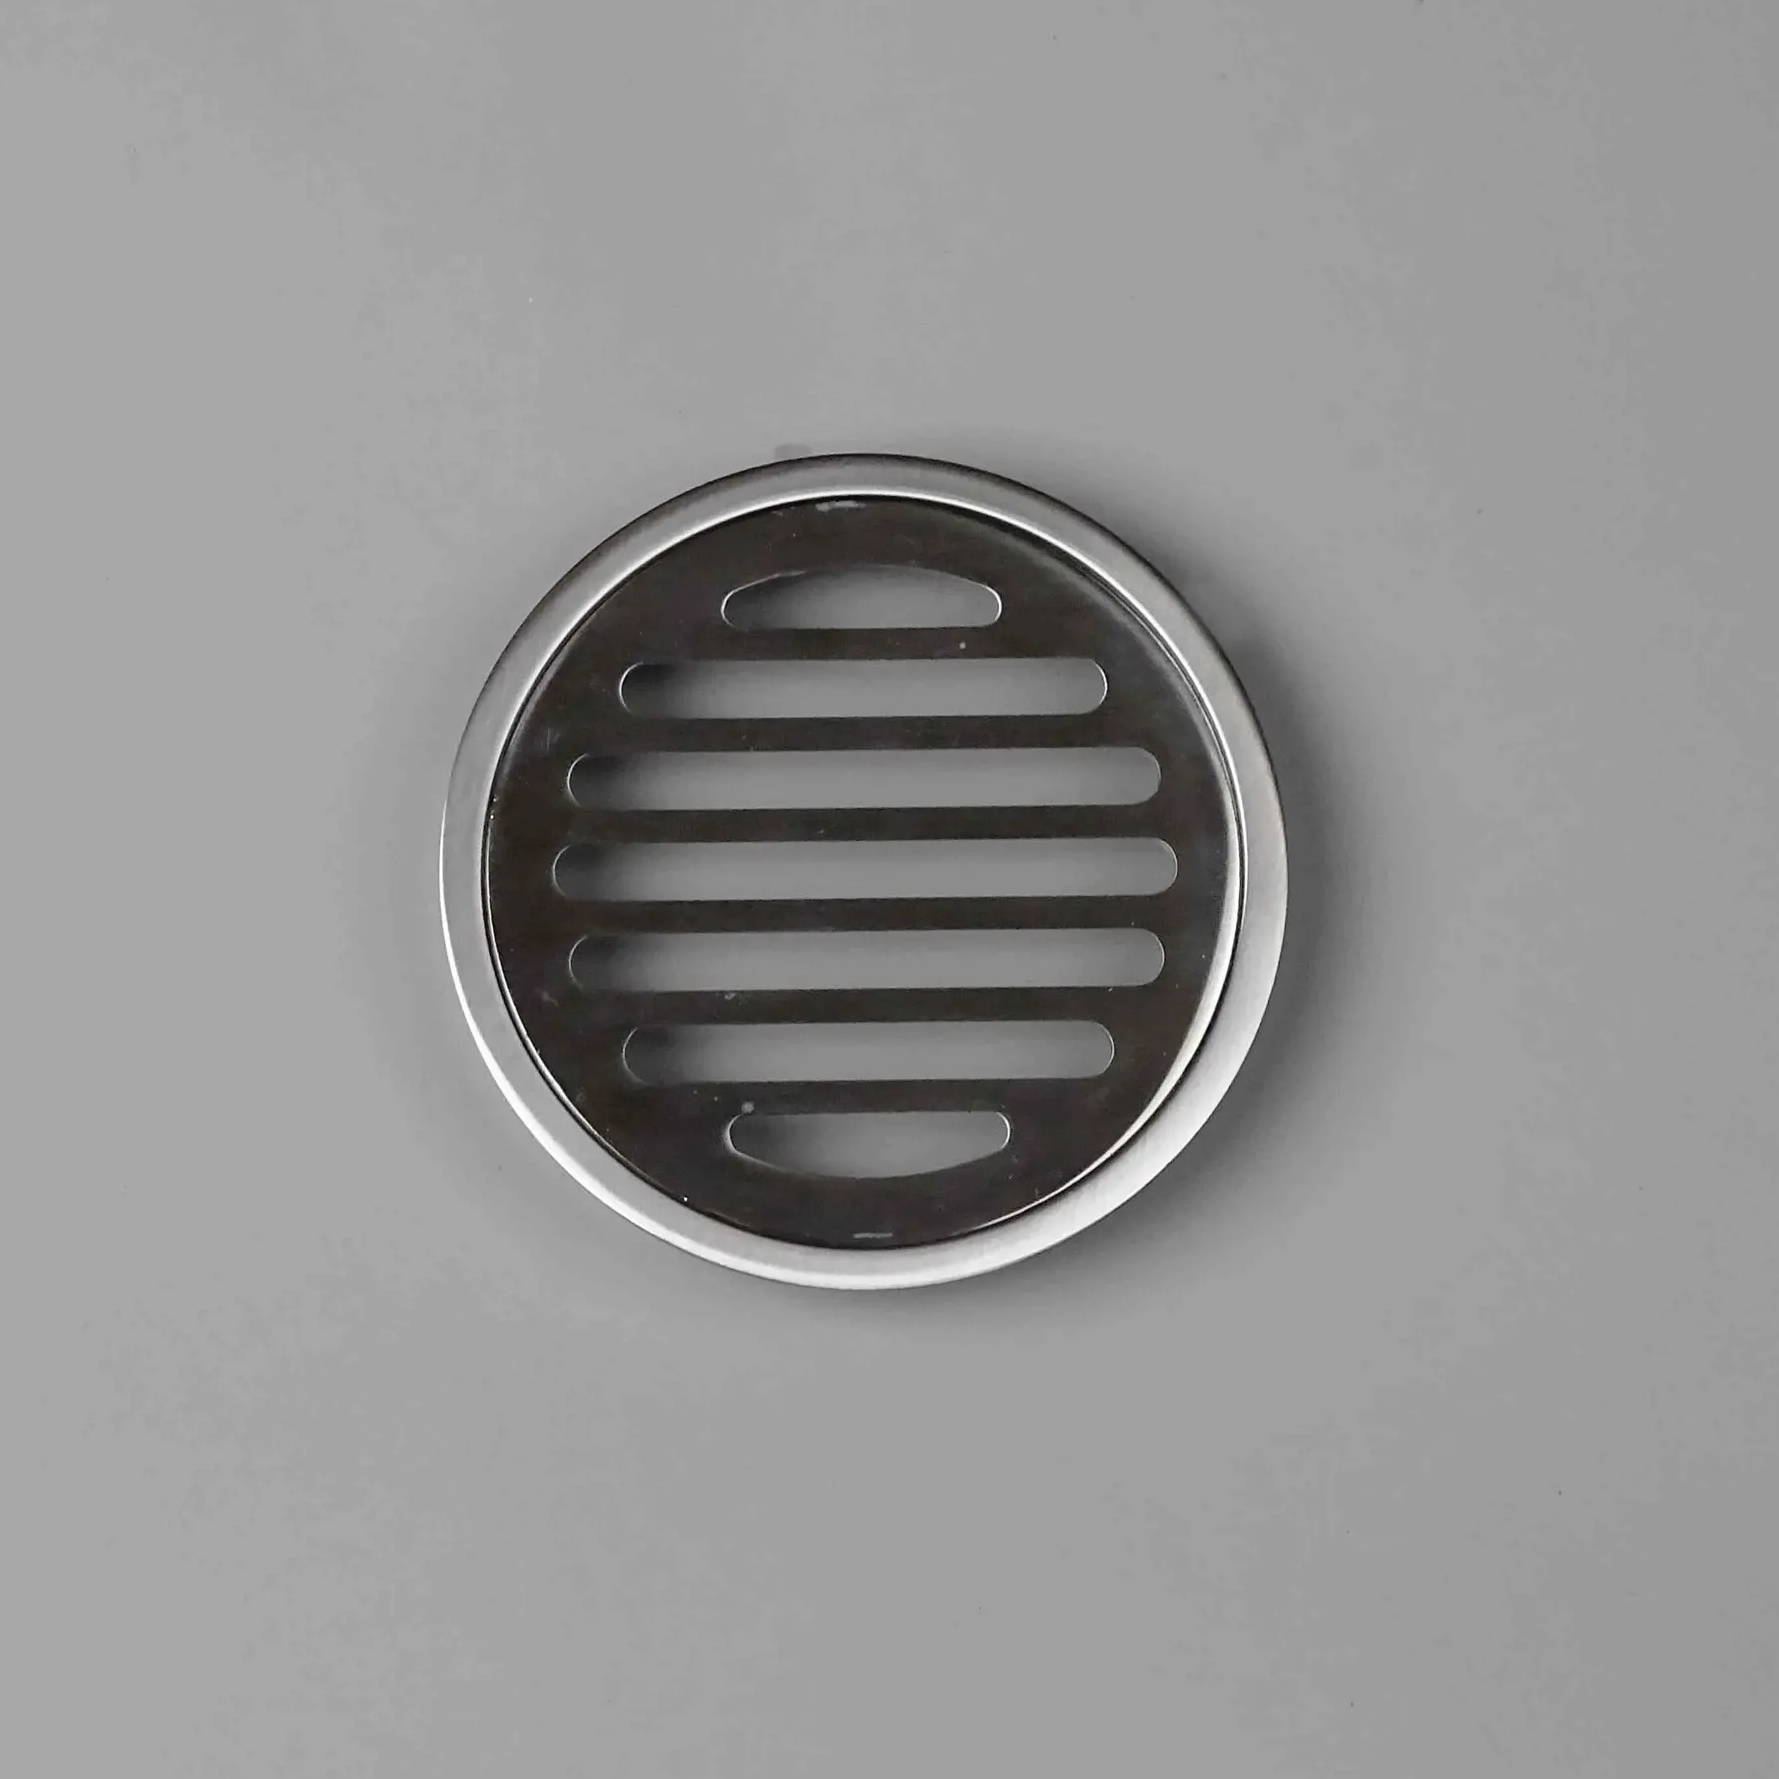 Round chrome shower drain grates wondercap bathroom renovation